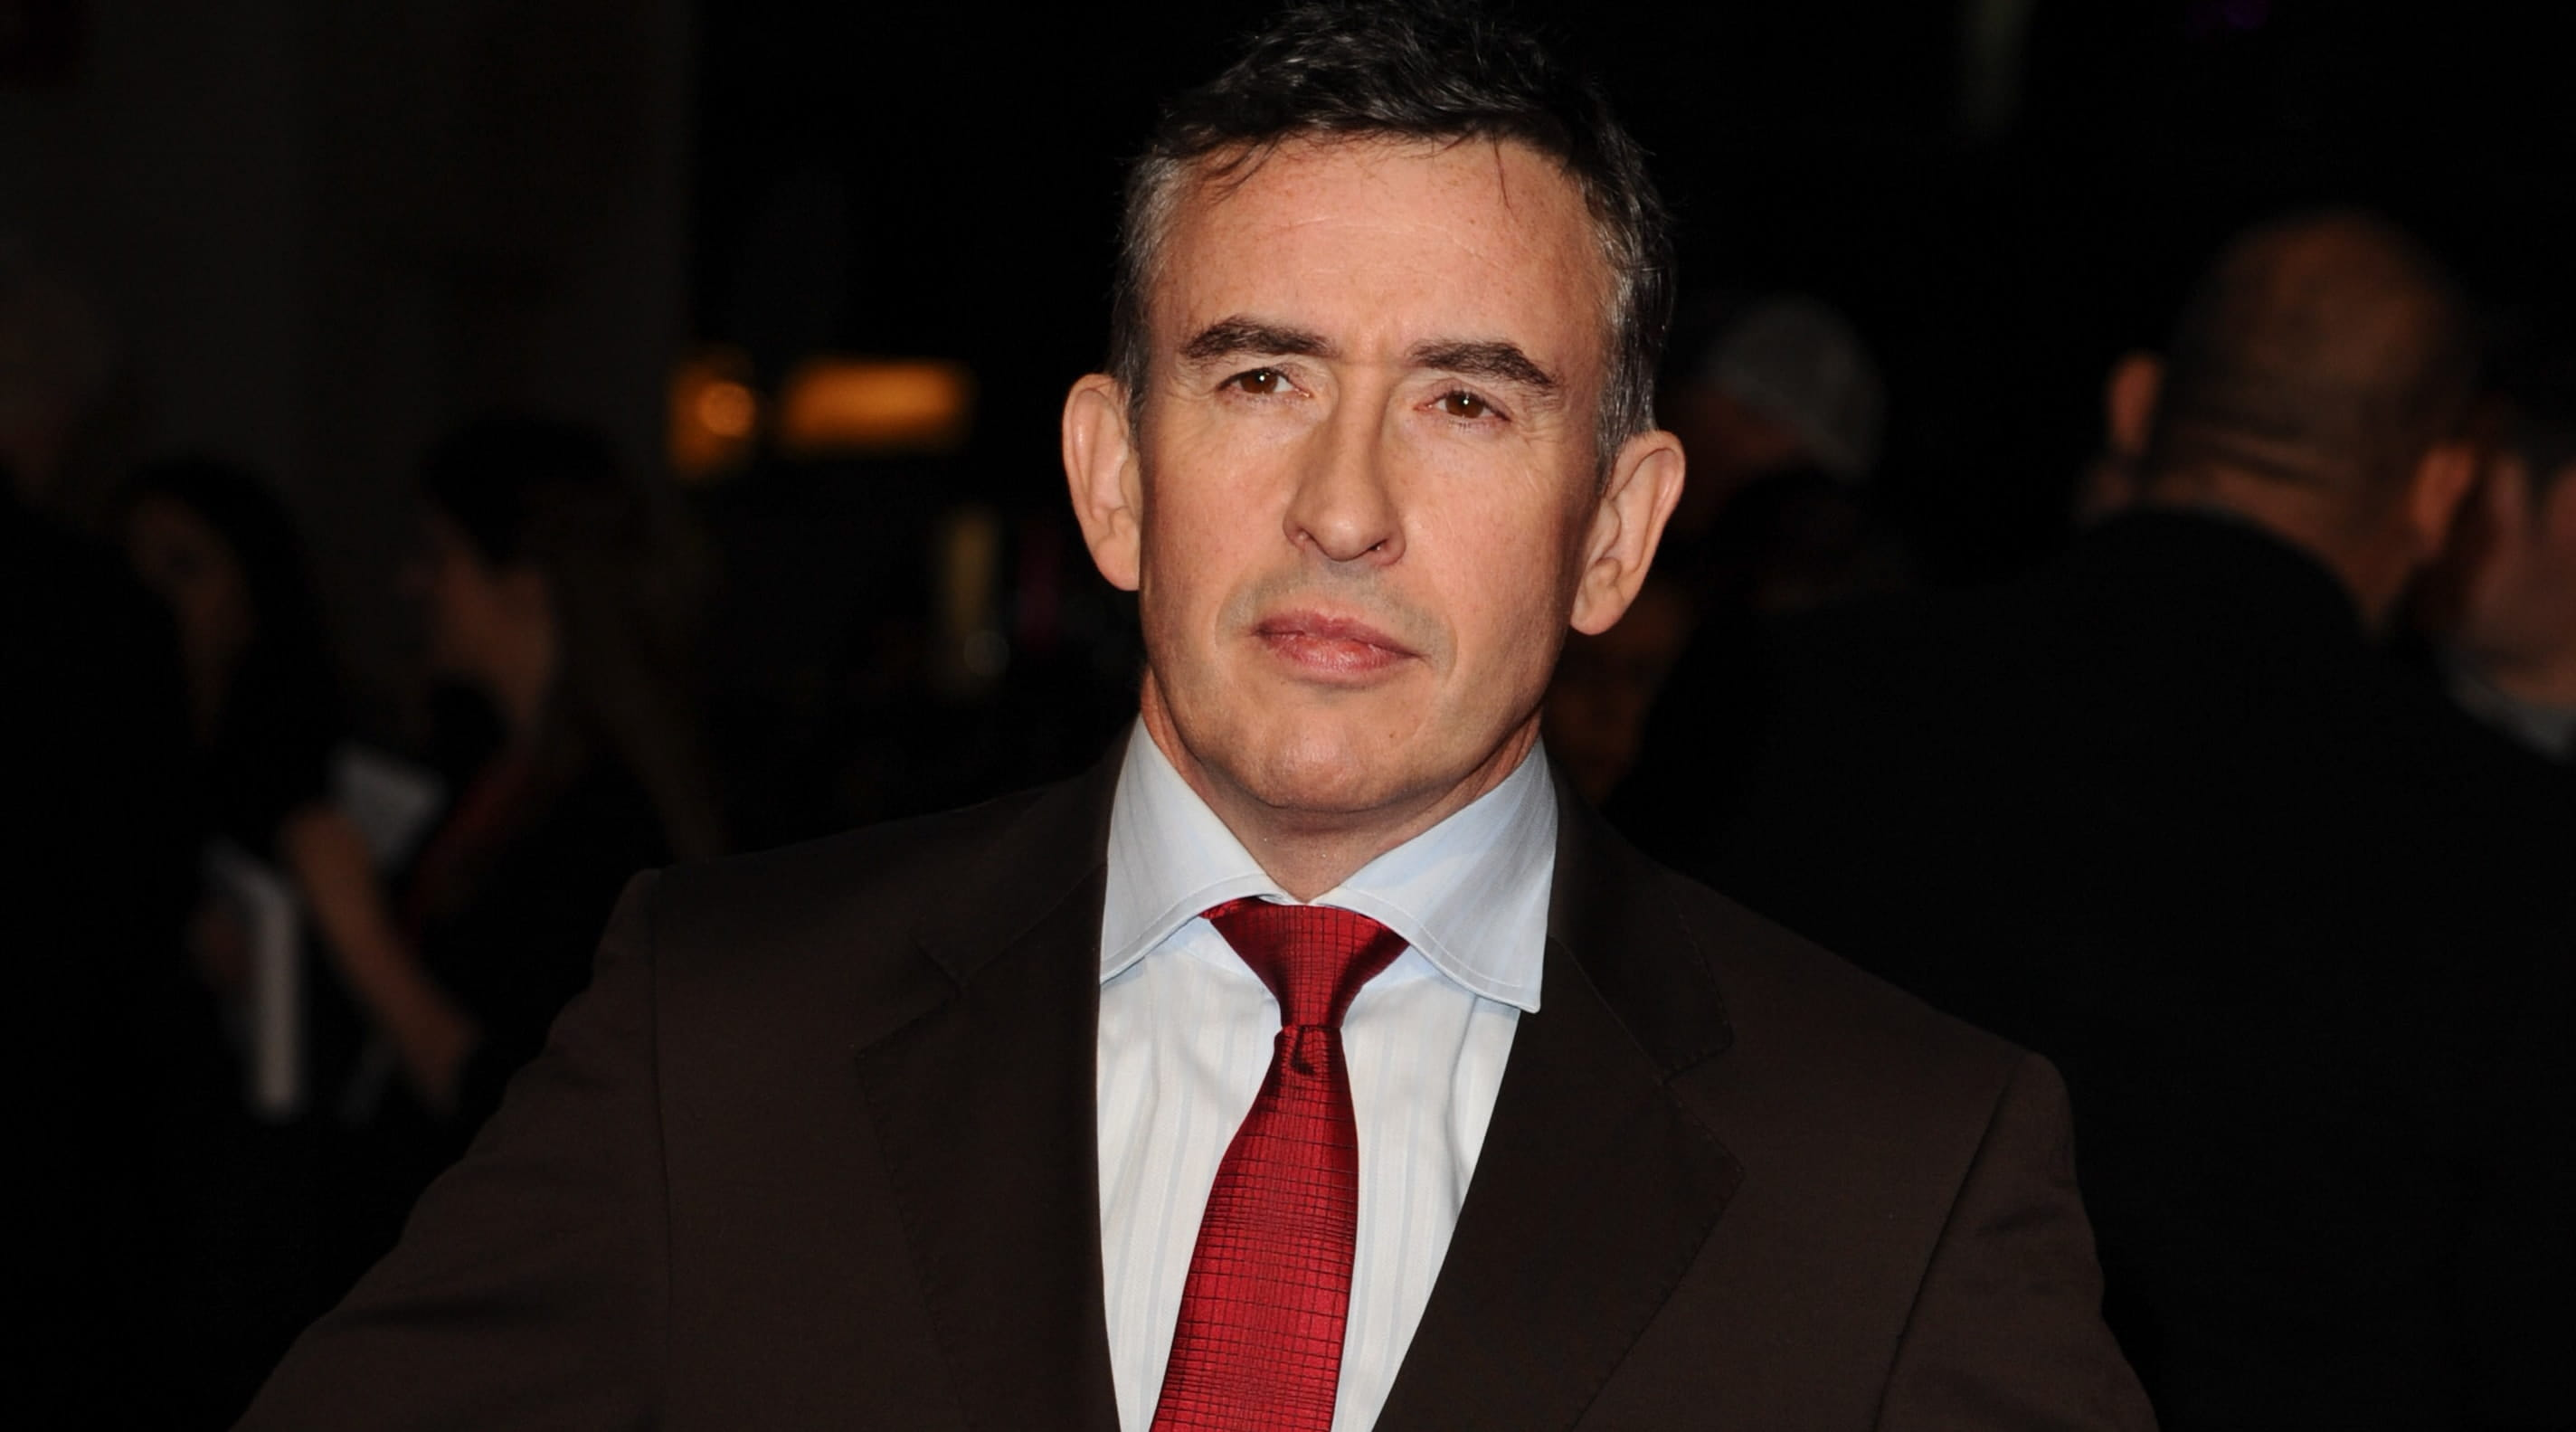 https://economia.icaew.com:443/-/media/economia/images/article-images/stevecoogan630.ashx